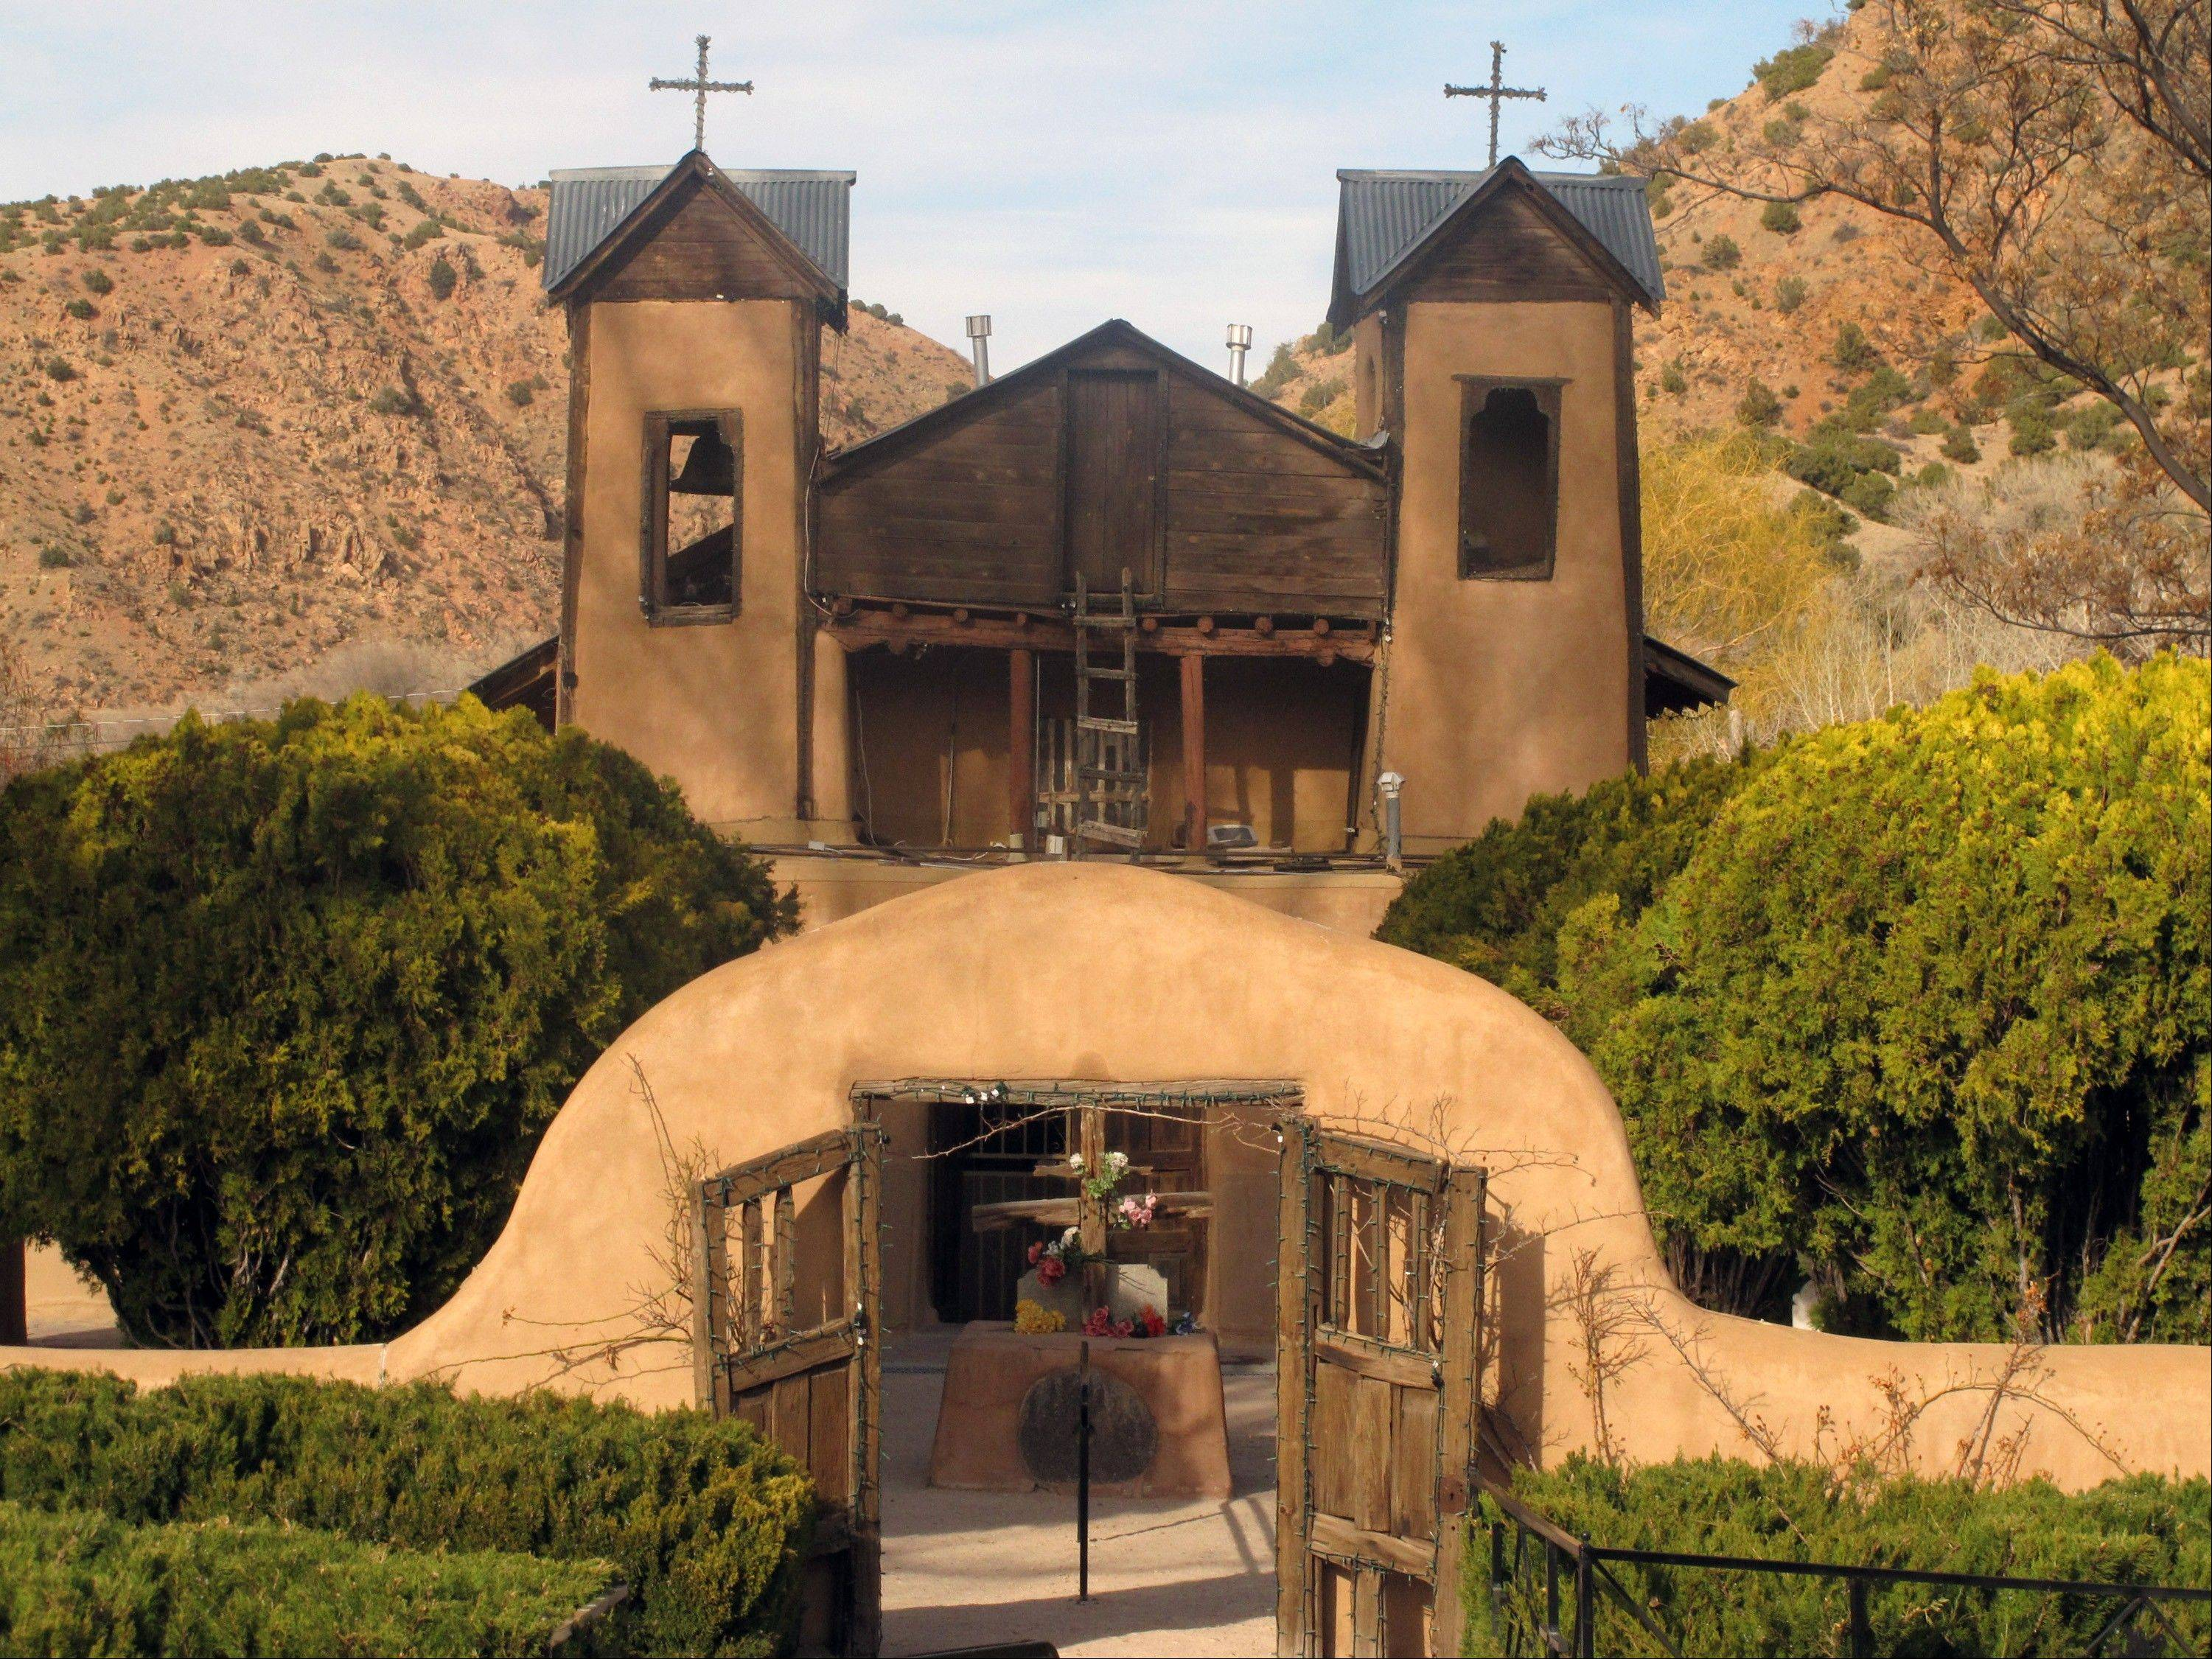 El Santuario de Chimayo in Chimayo, N.M. is shown as volunteers prepare for Easter weekend. Around 50,000 pilgrims are expected to visit the shrine known as the �Lourdes of America.�